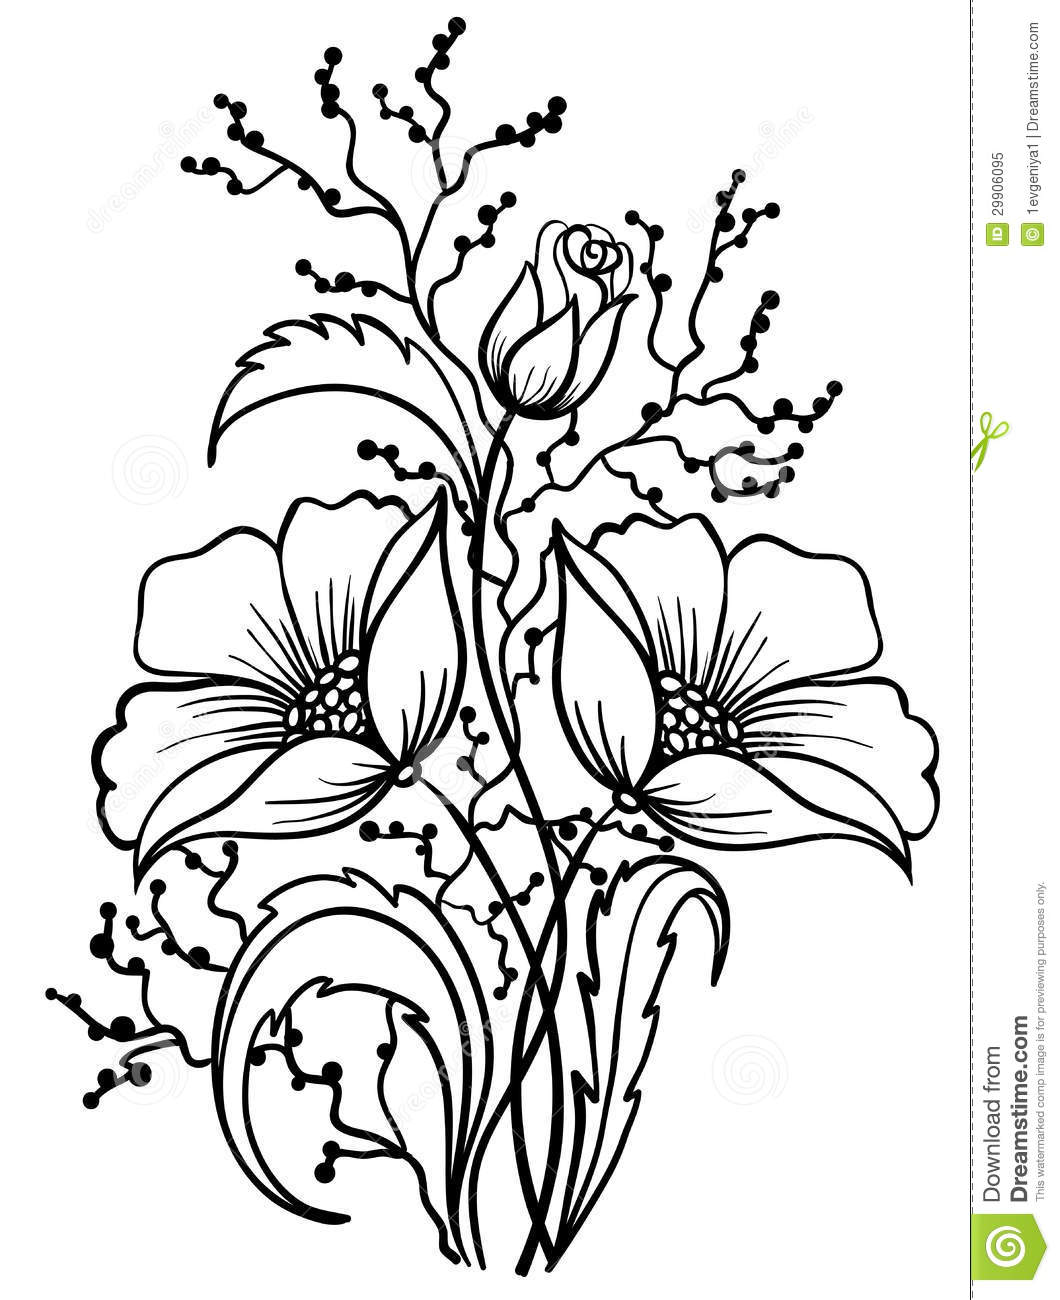 Flower drawings free download png free download Line drawings of flowers free download - ClipartFest png free download